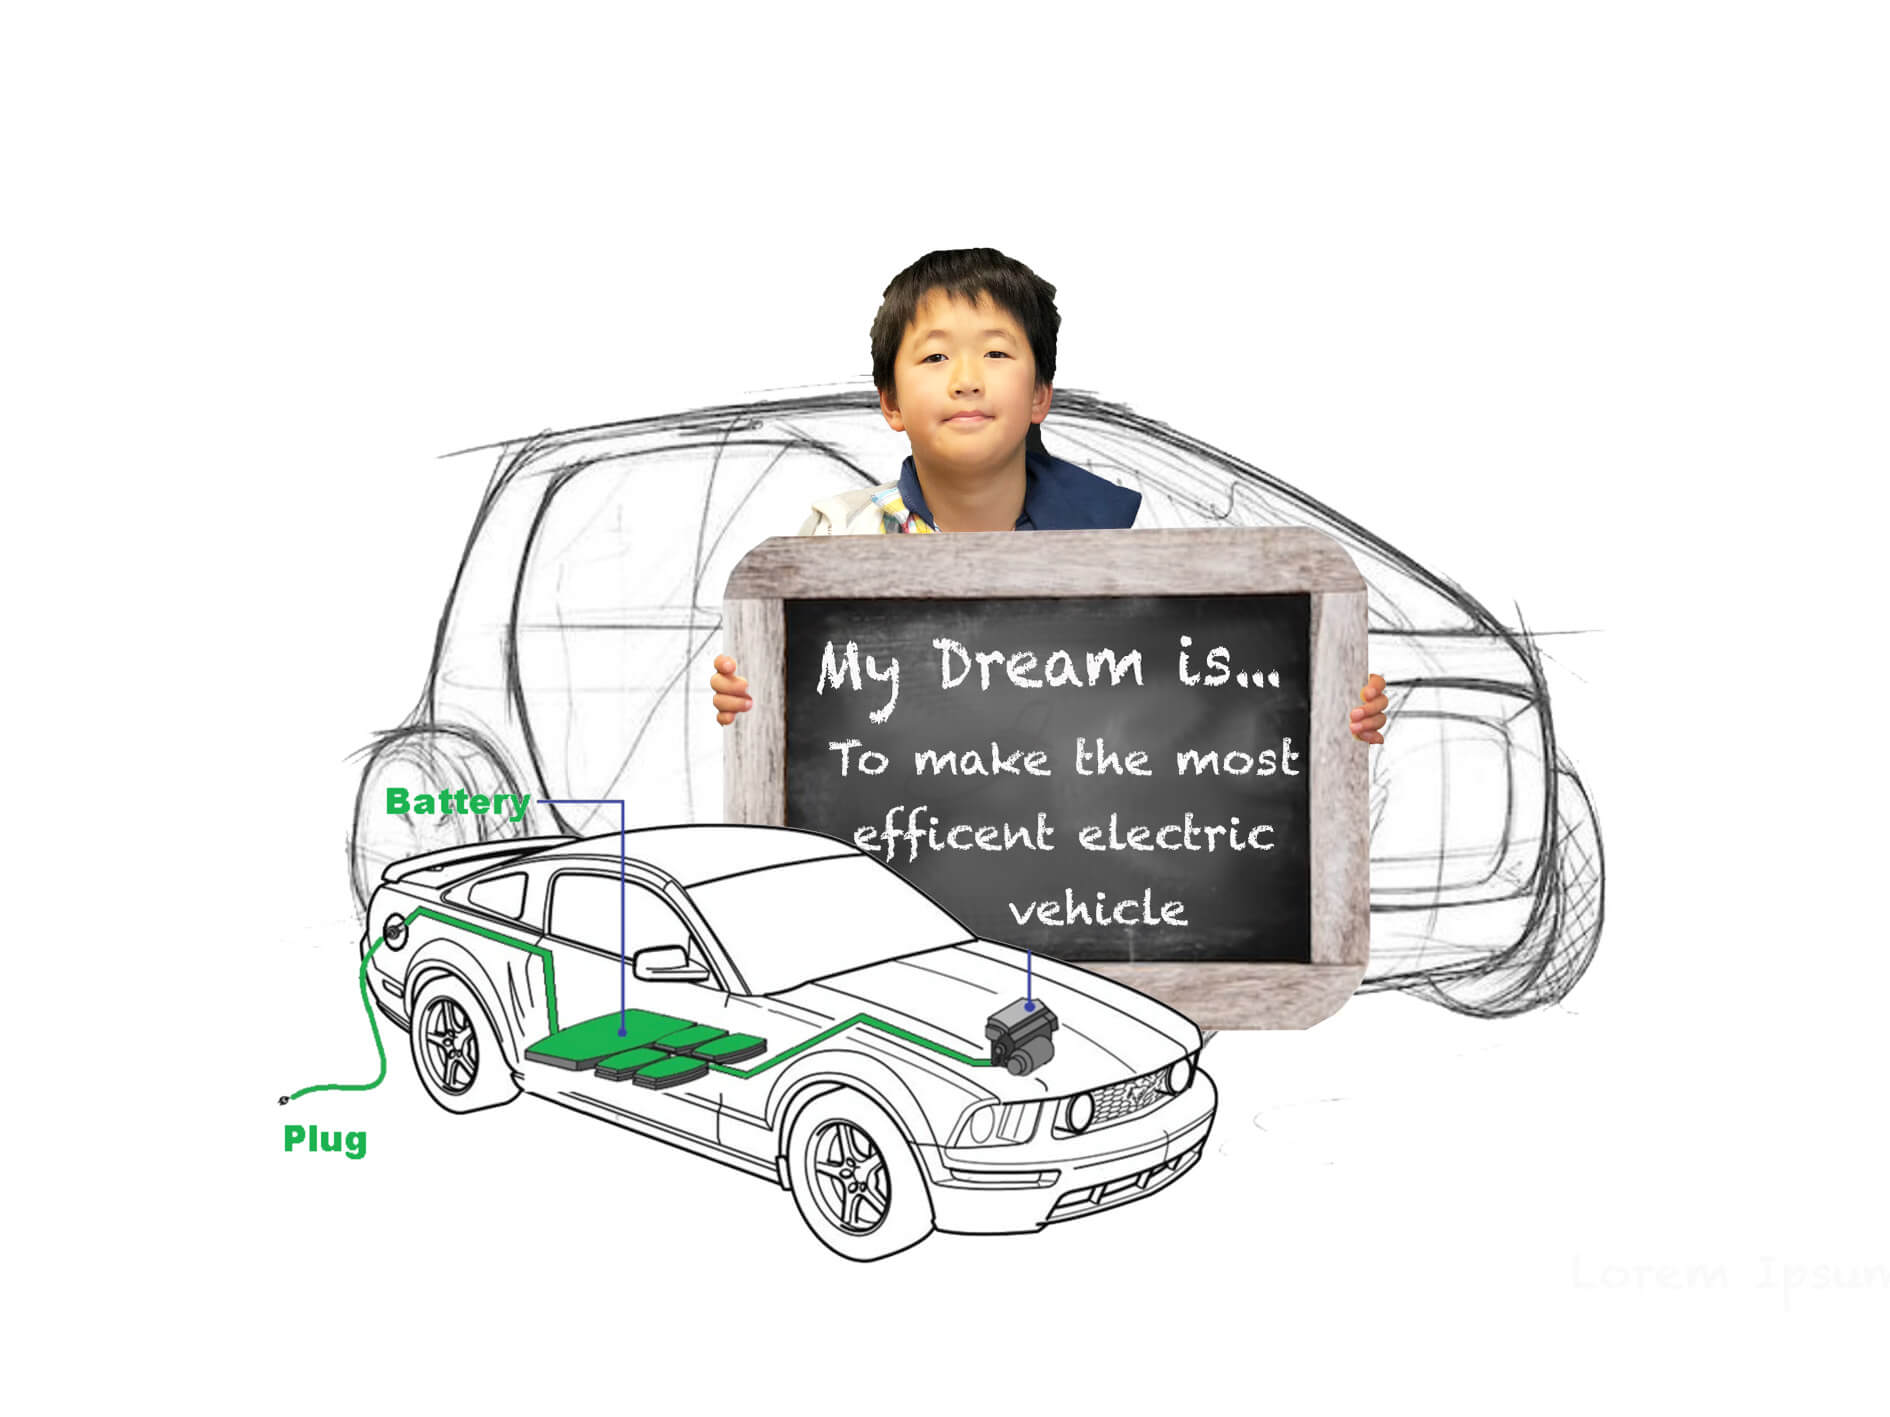 My Dream is to make the most efficient electric vehicle